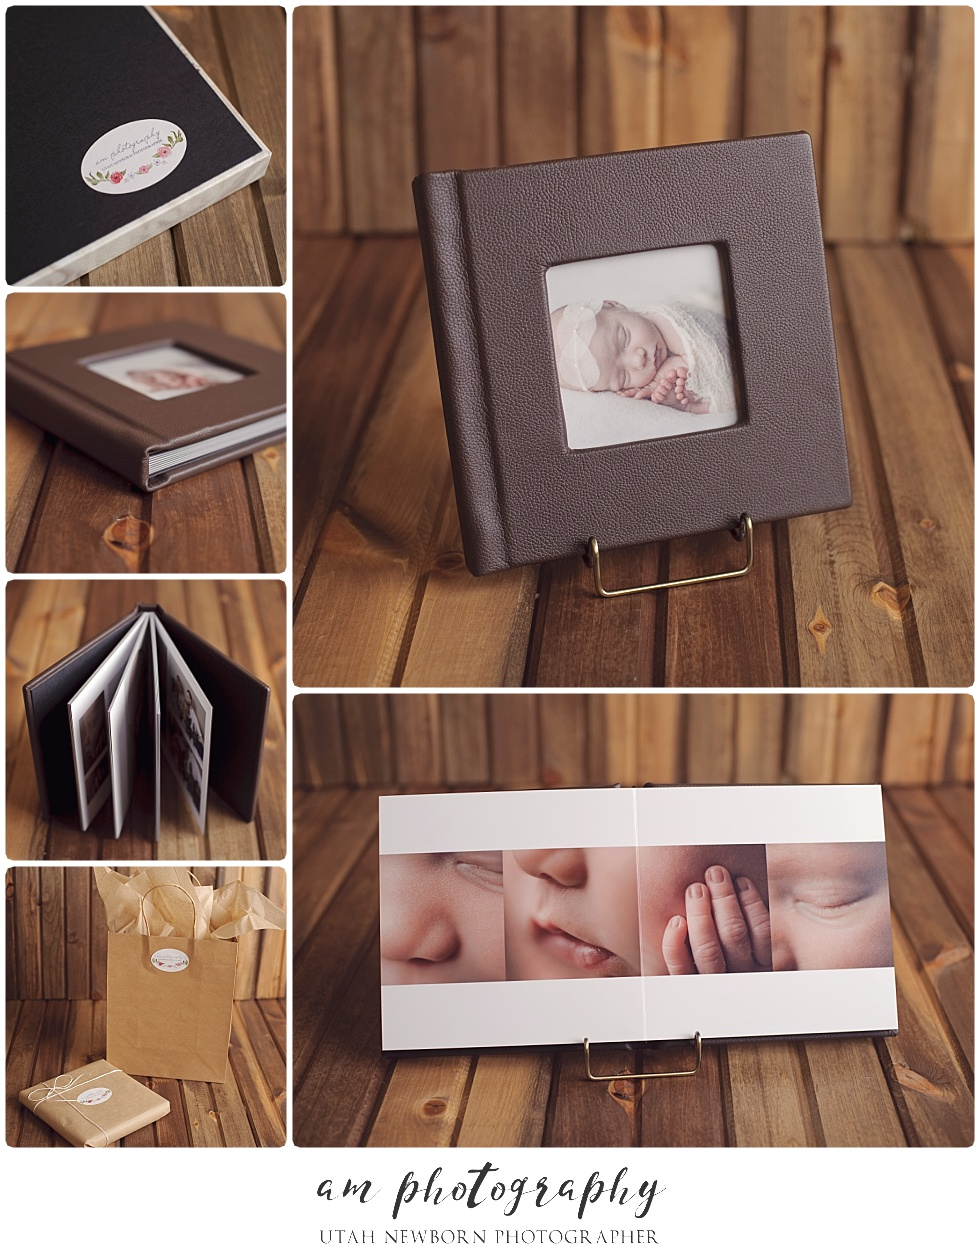 high quality products from Utah newborn photography session